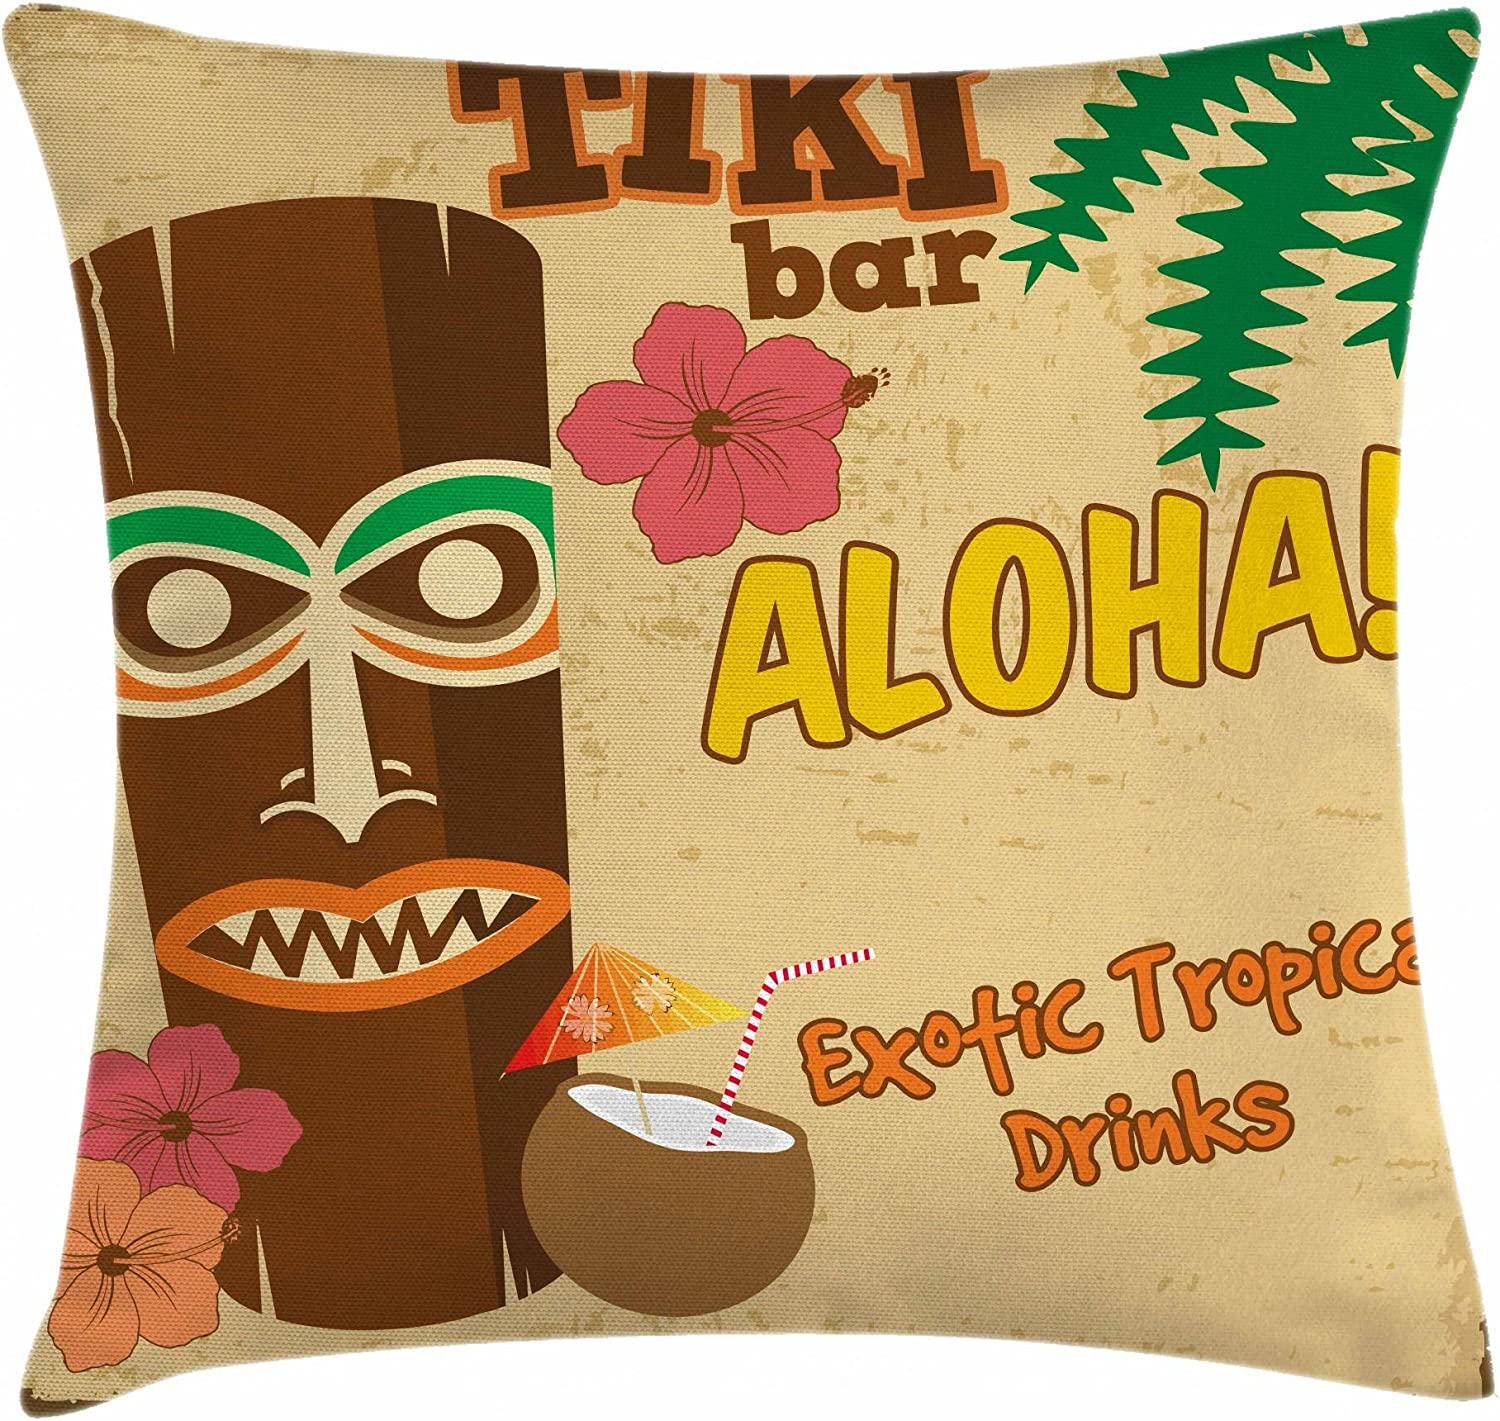 "Ambesonne Tiki Bar Throw Pillow Cushion Cover, Polynesian with Tropical Drink Retro Typography and Flora Old Aged Design, Decorative Square Accent Pillow Case, 16"" X 16"", Beige Brown"